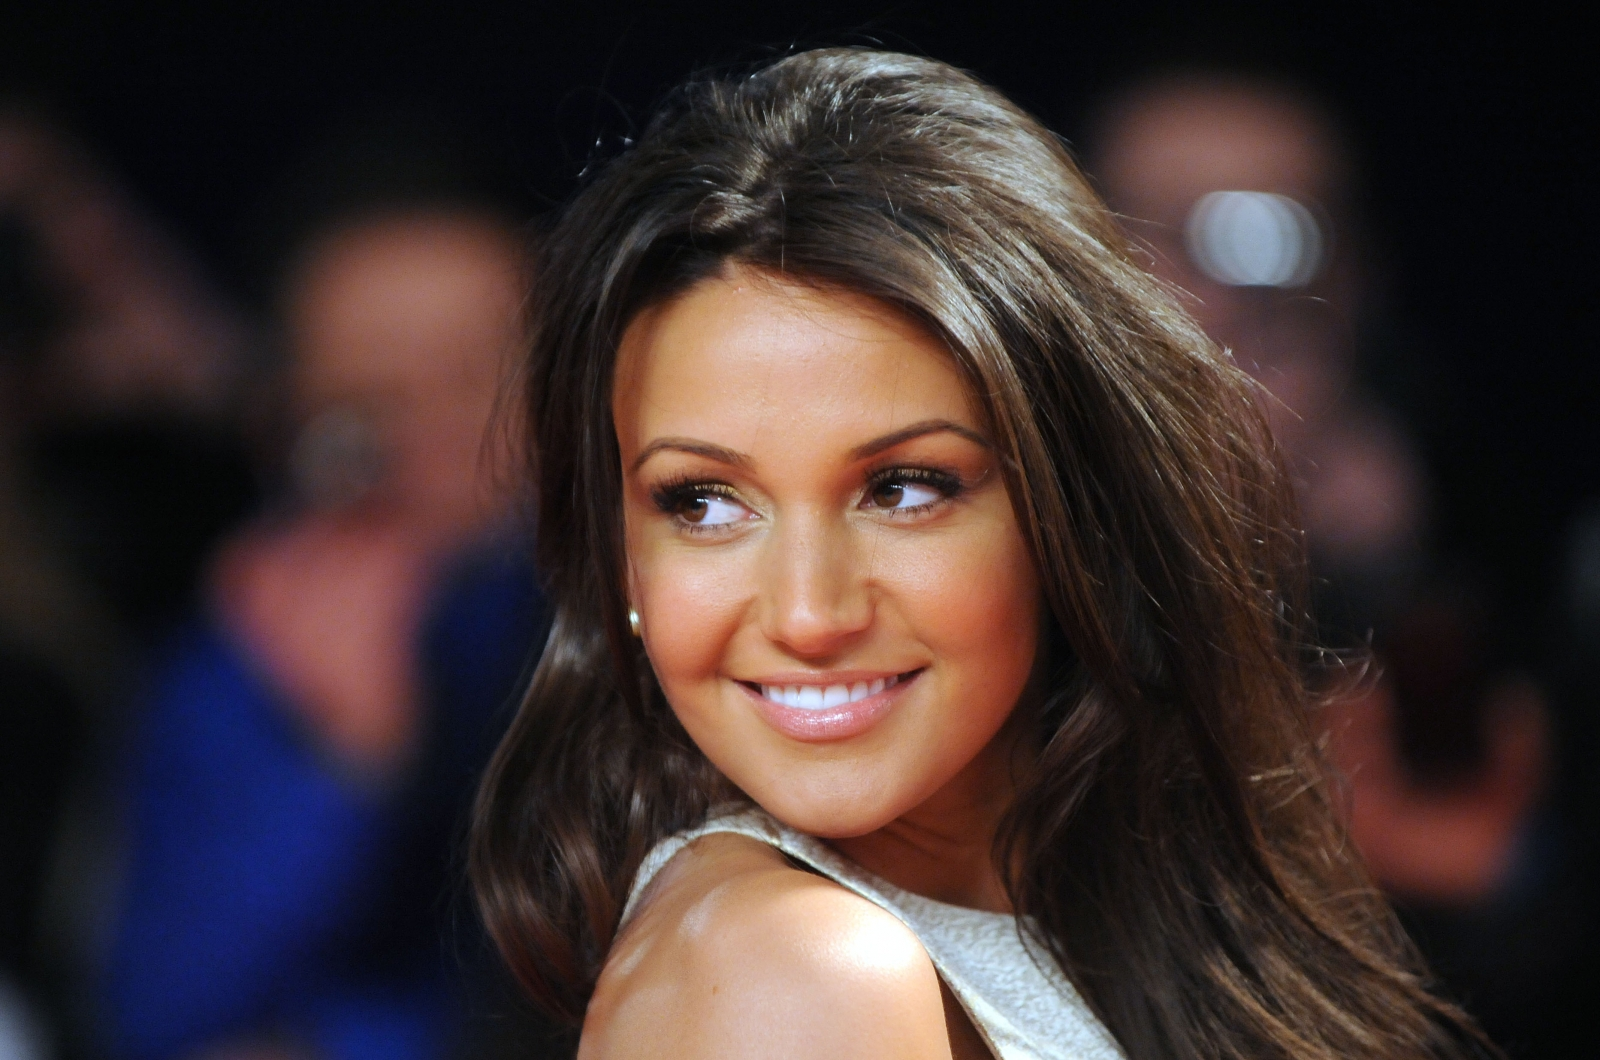 So Beautiful Michelle Keegan Channels Princess Leia